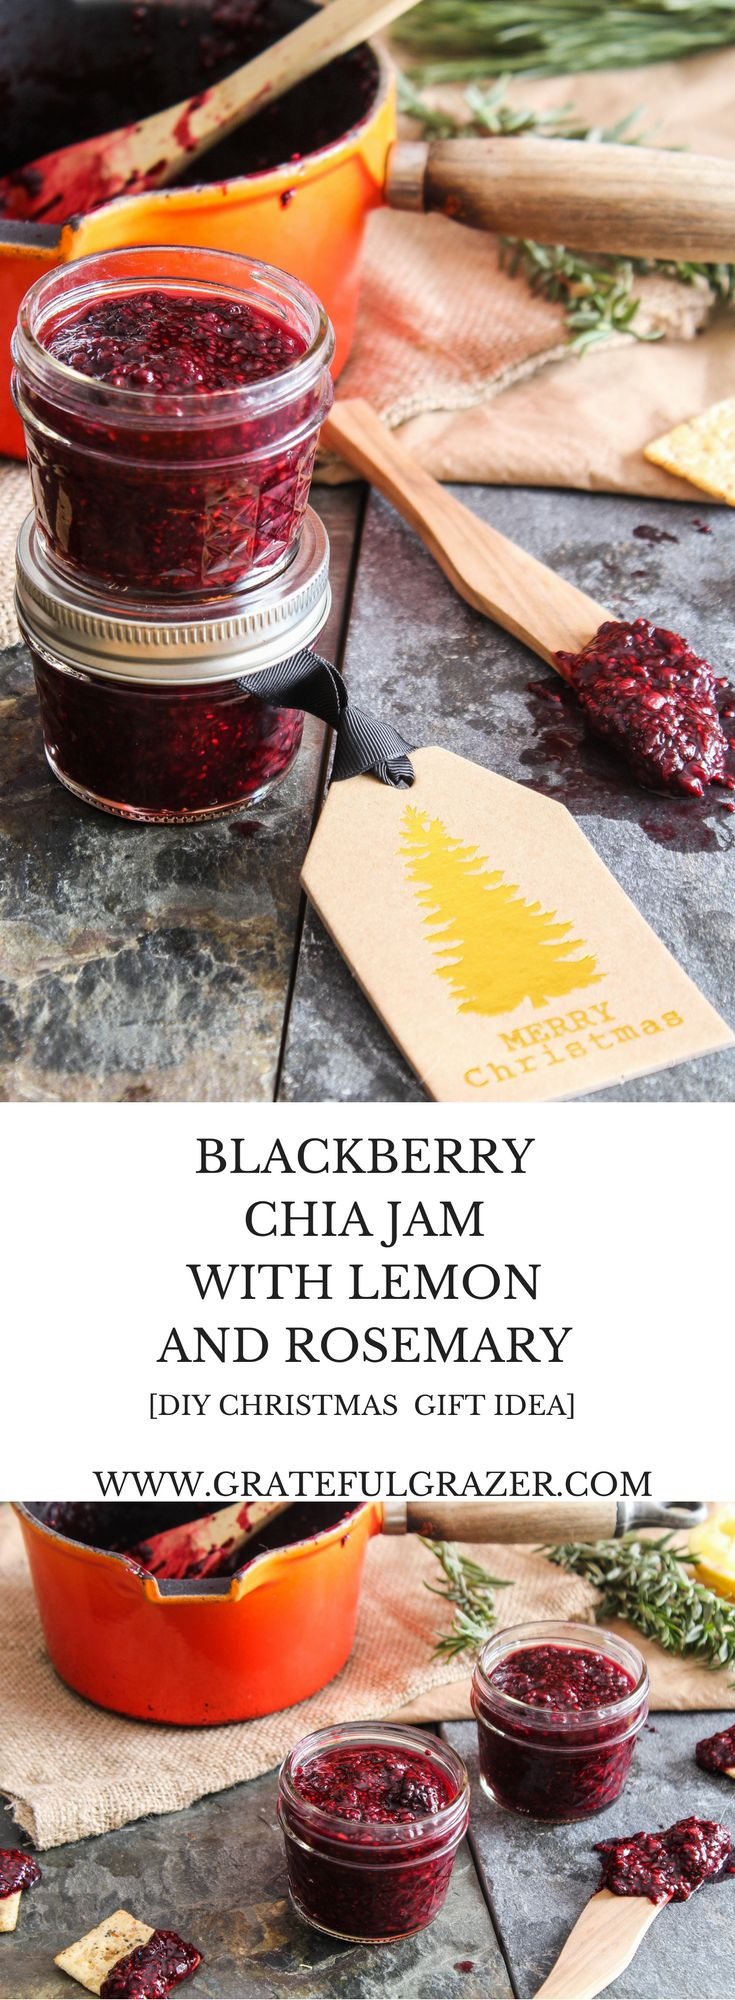 40 best images about food kid friendly recipes on pinterest blackberry chia jam with lemon and rosemary diy homemade christmas gift idea forumfinder Choice Image